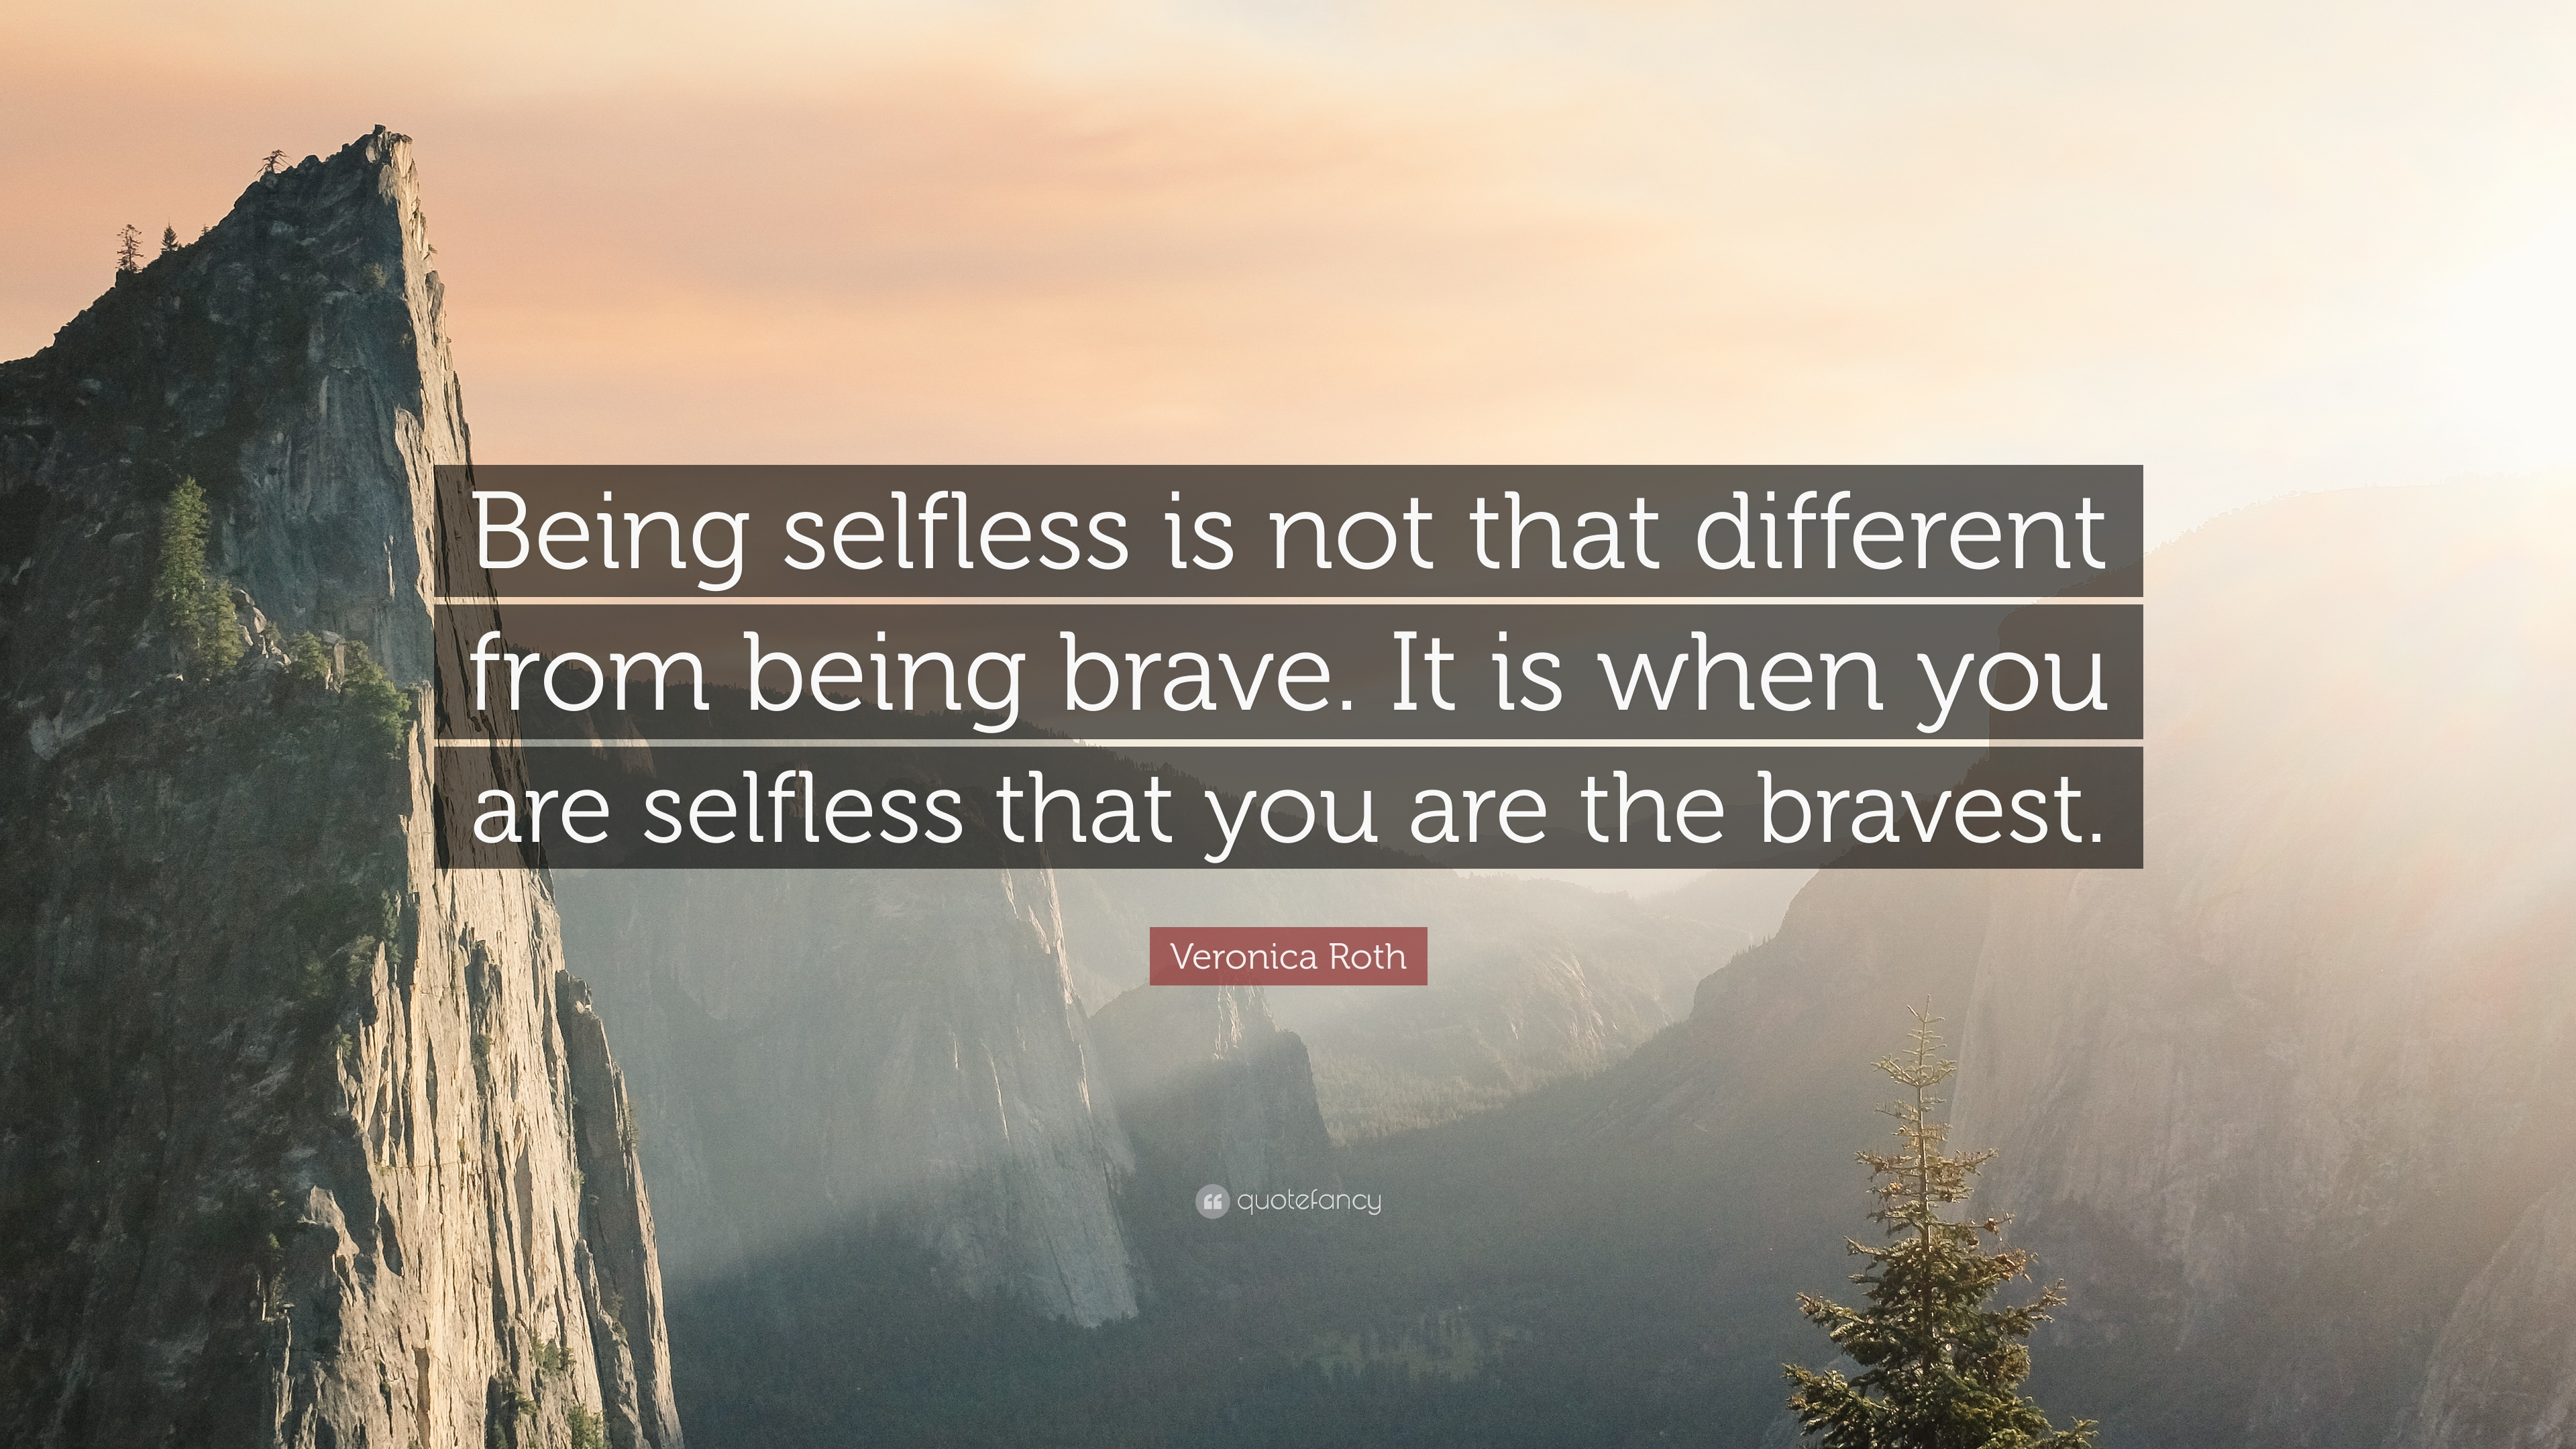 Veronica Roth Quote Being Selfless Is Not That Different From